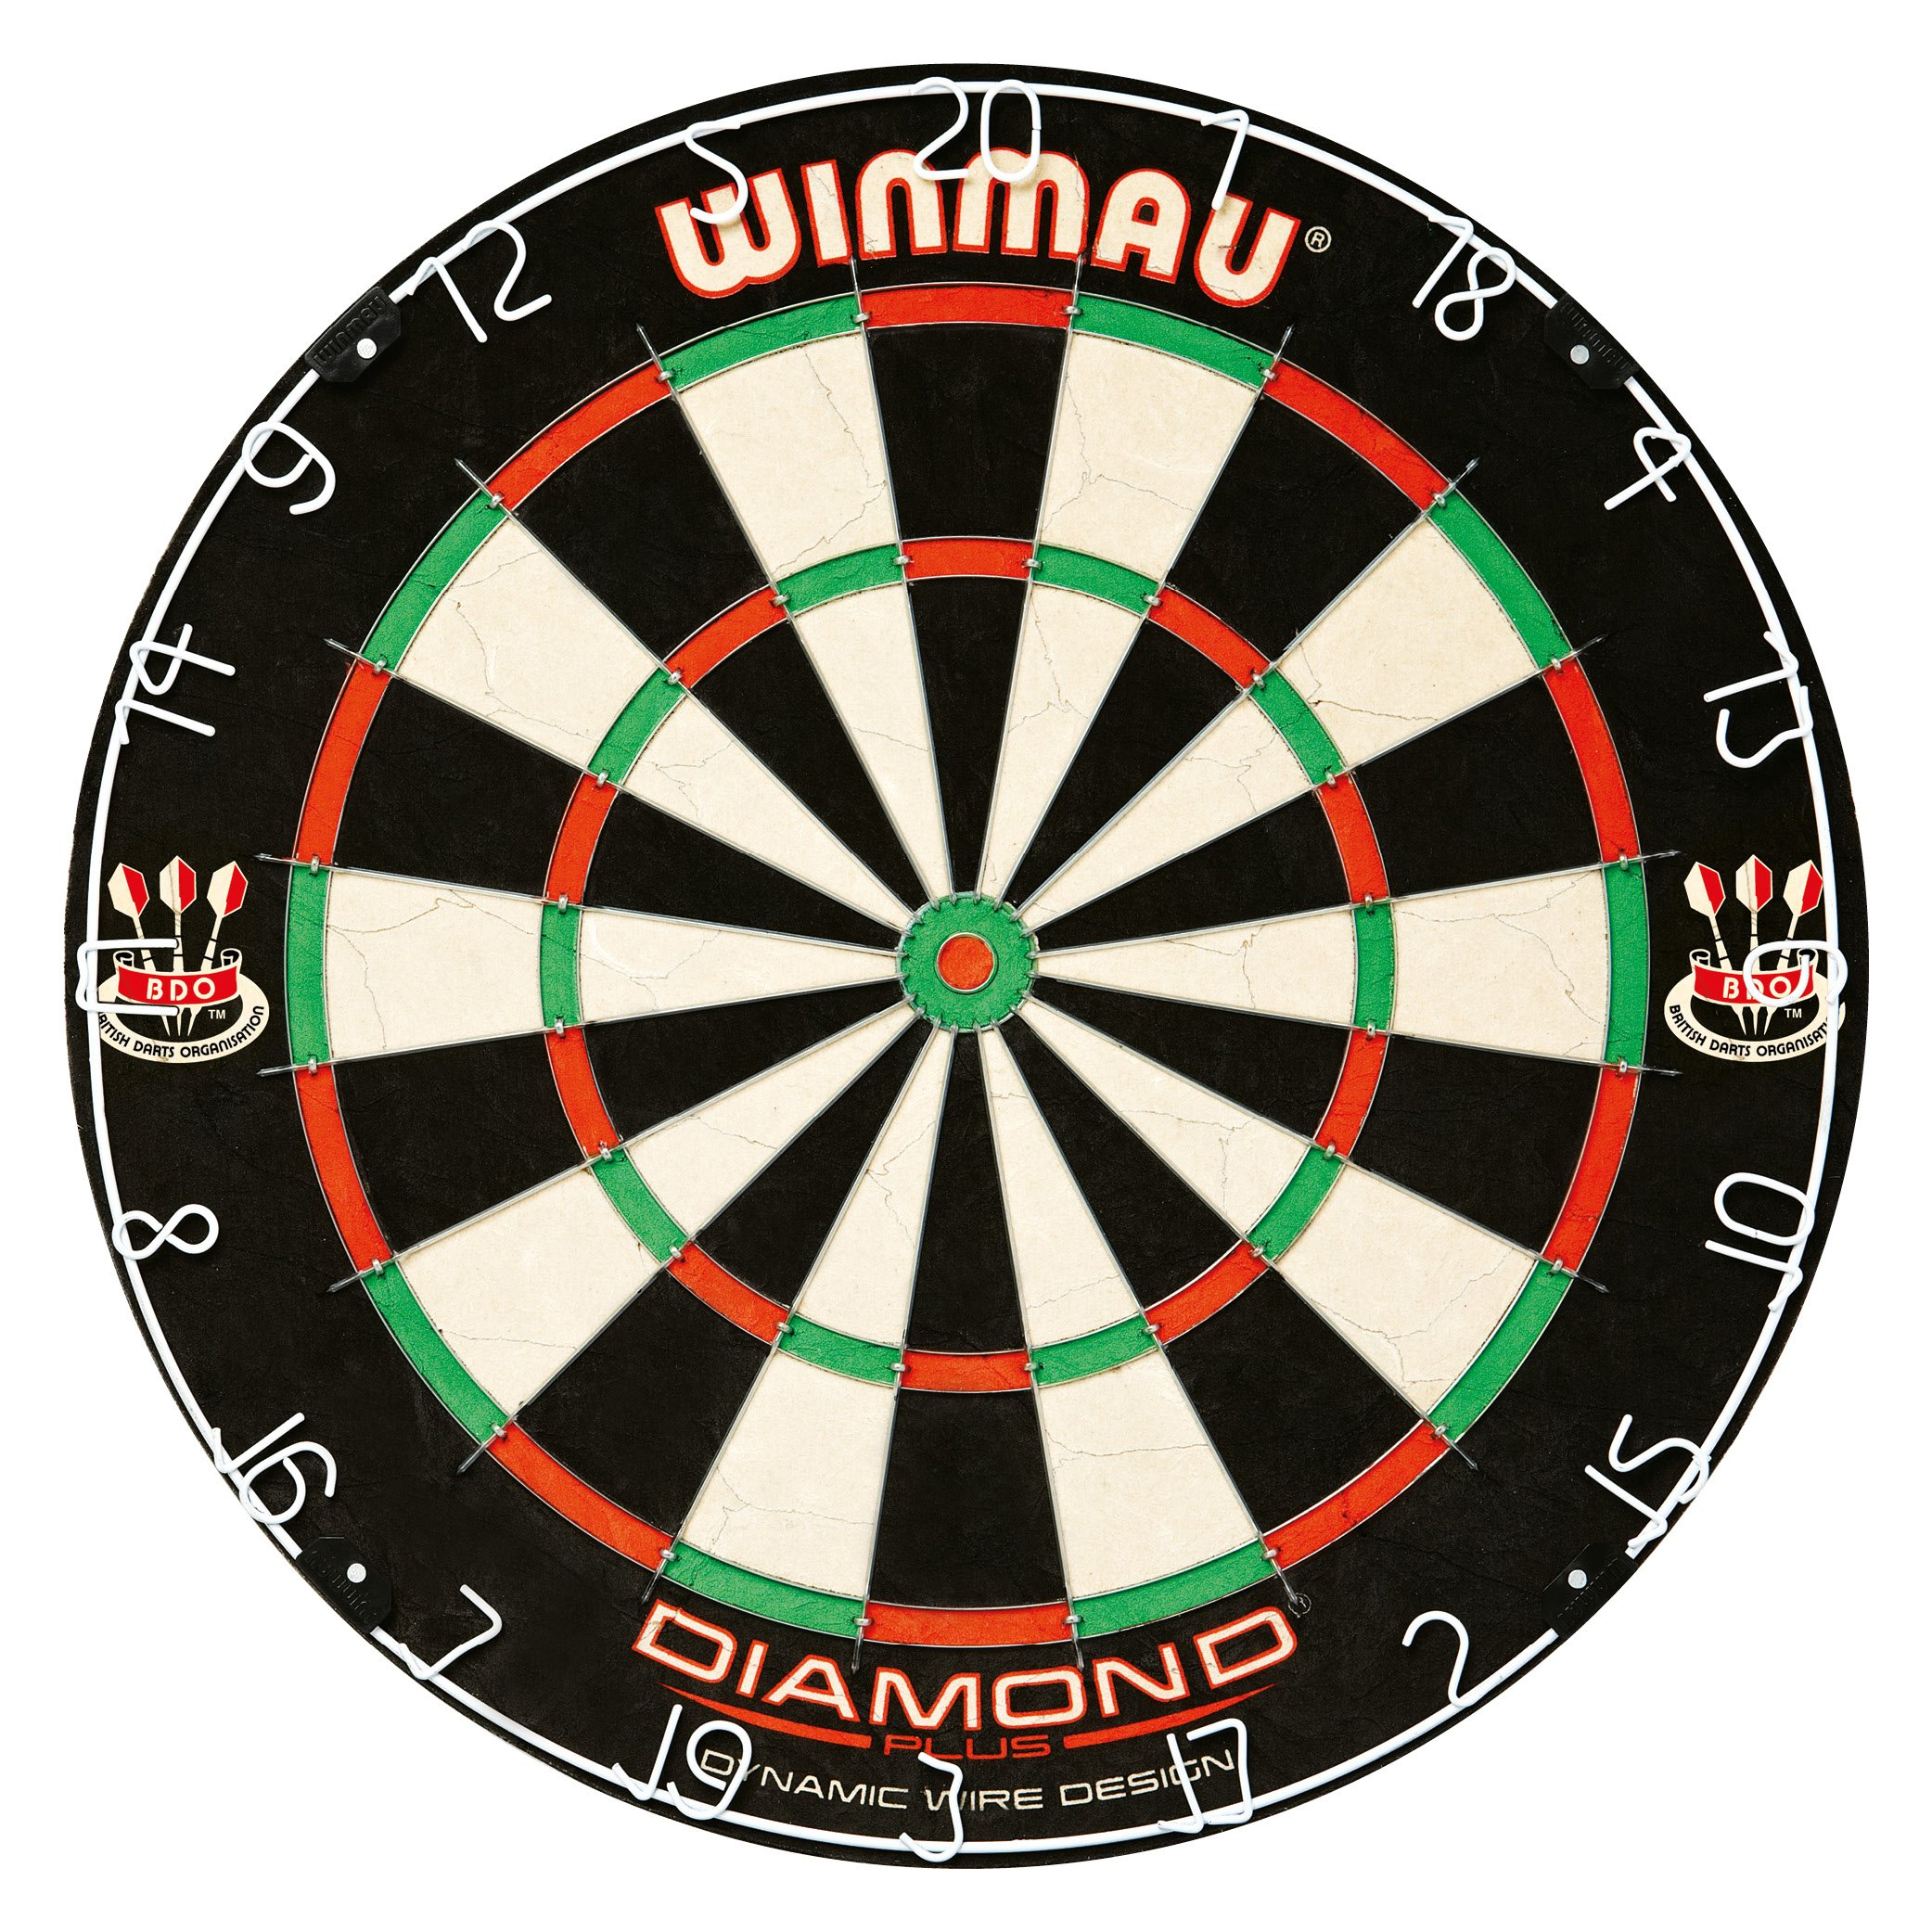 Winmau Diamond Plus Tournament Bristle Dartboard with Staple-Free Bullseye for Higher Scores and Fewer Bounce-Outs by Winmau